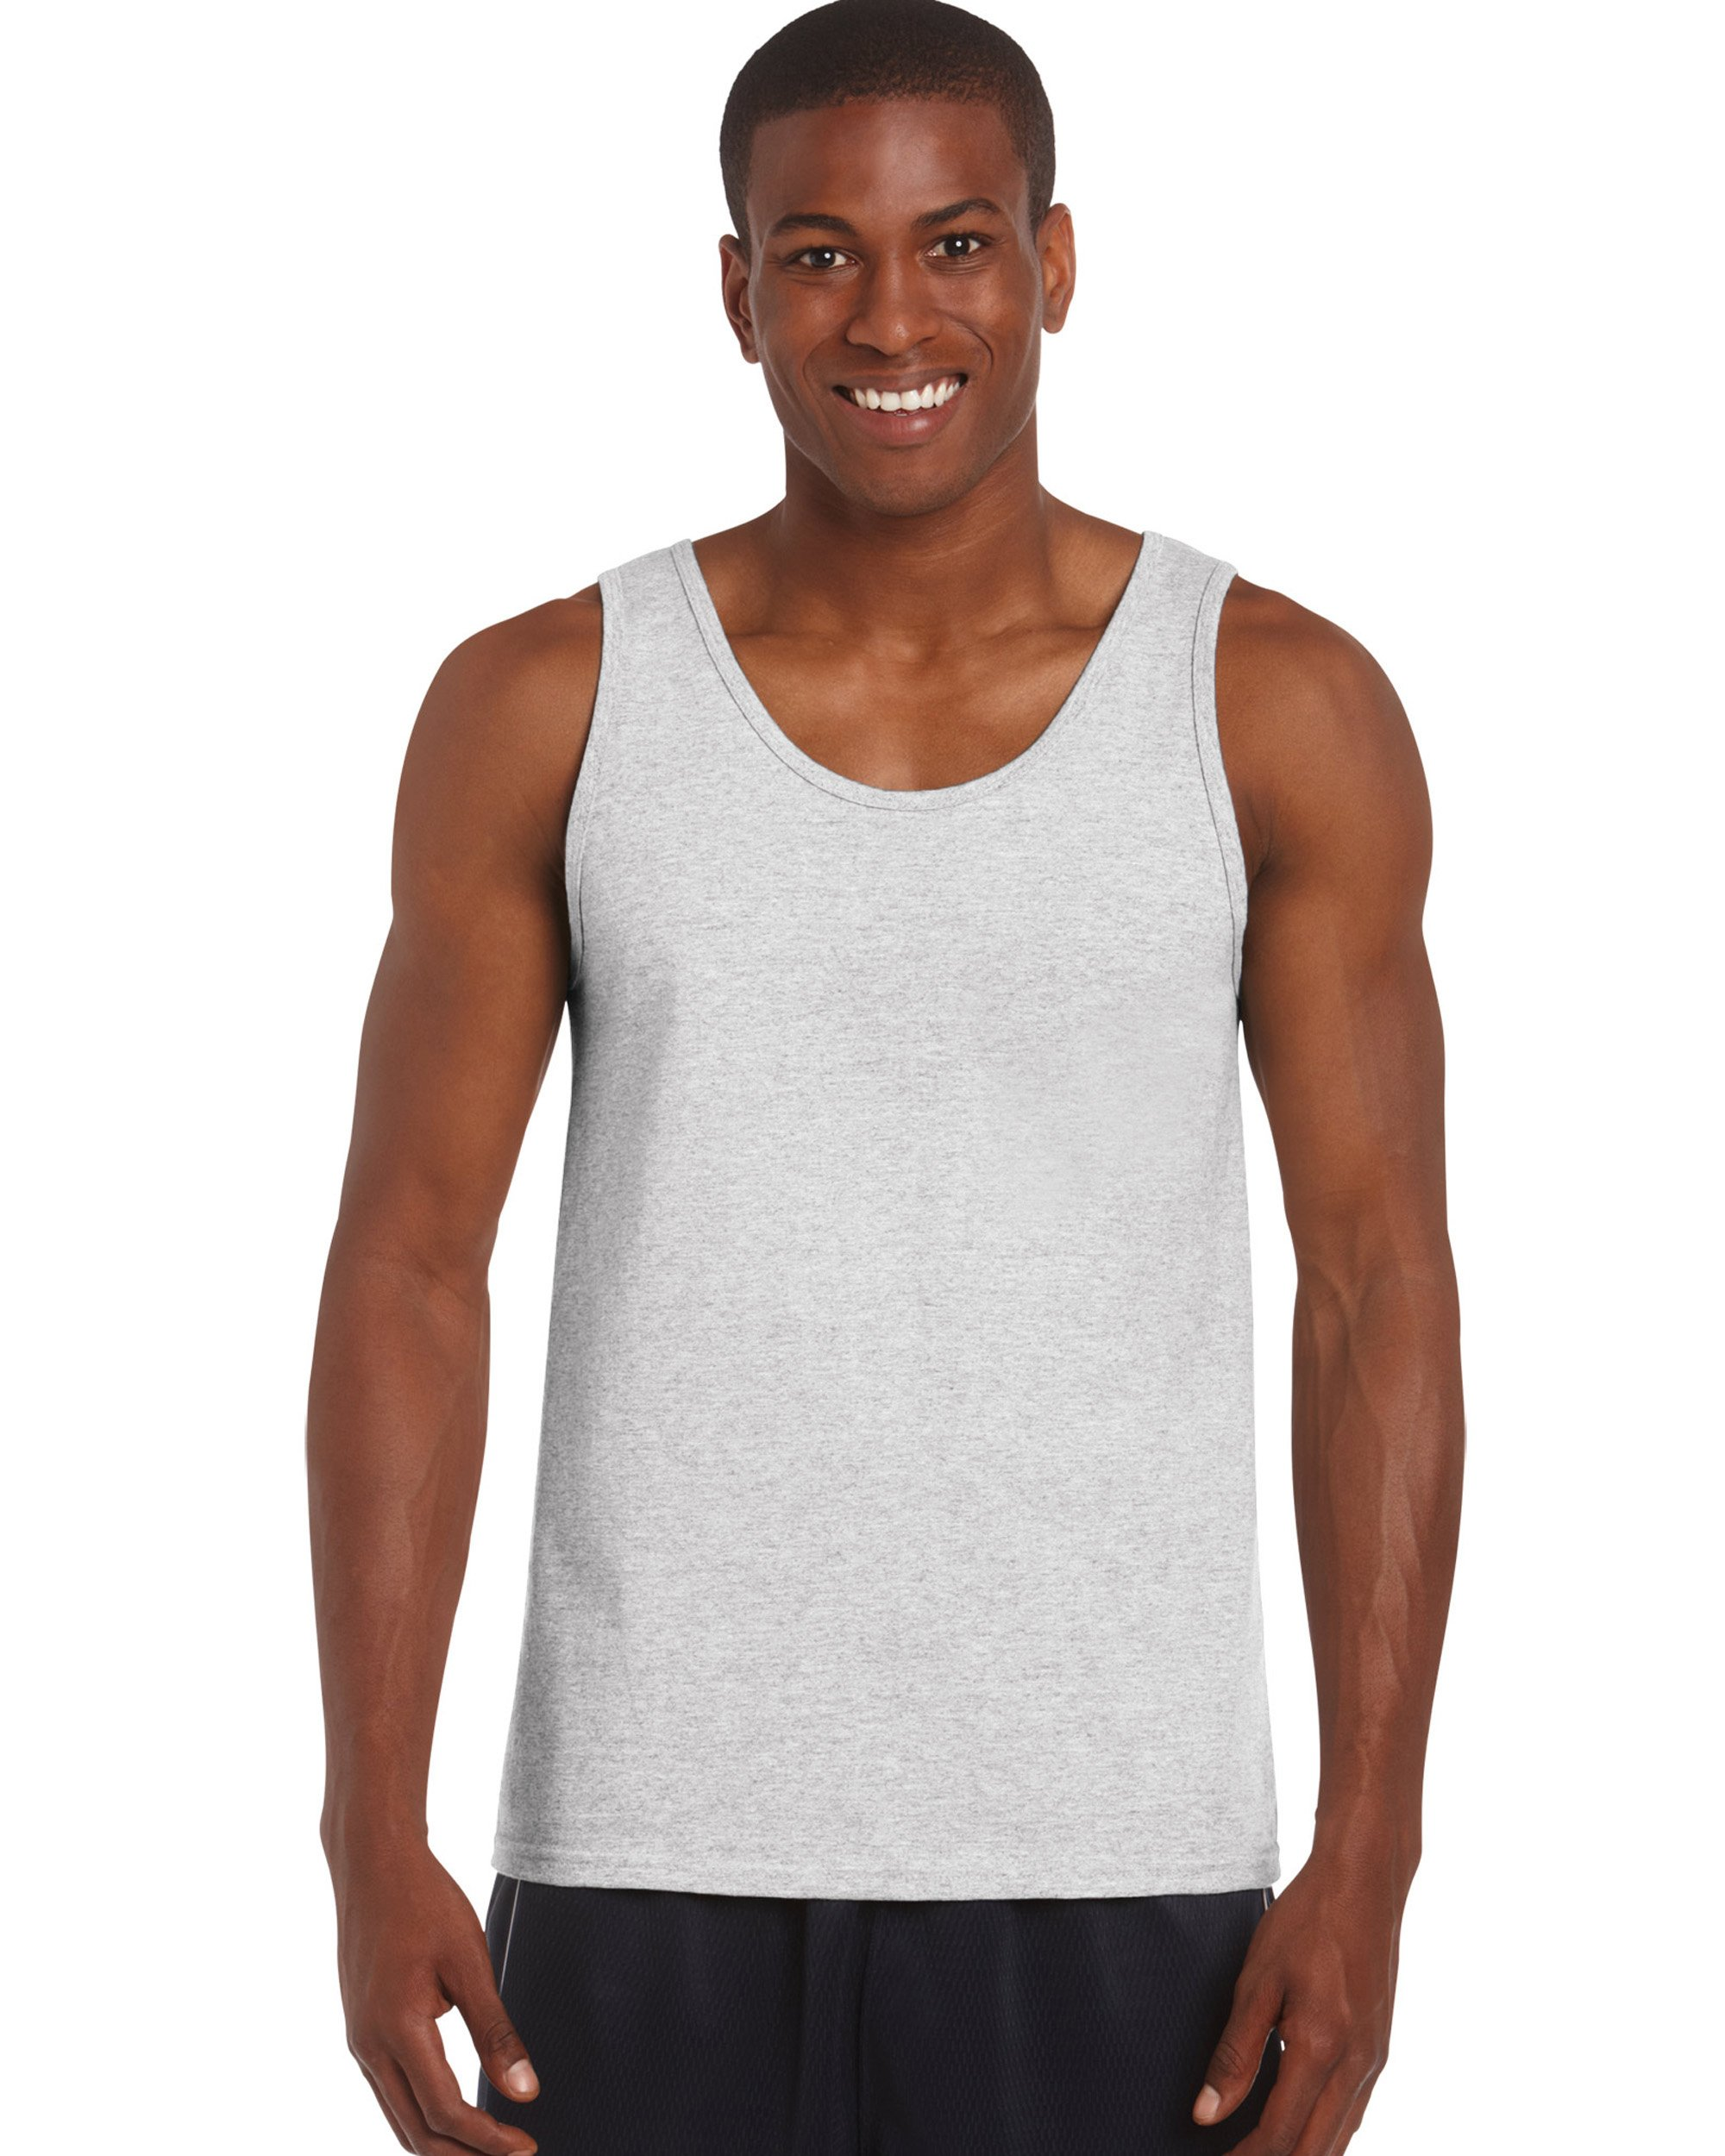 Gildan 2200- Classic Fit Adult Tank Top Ultra Cotton - First Quality - Ash Grey - 2X-Large